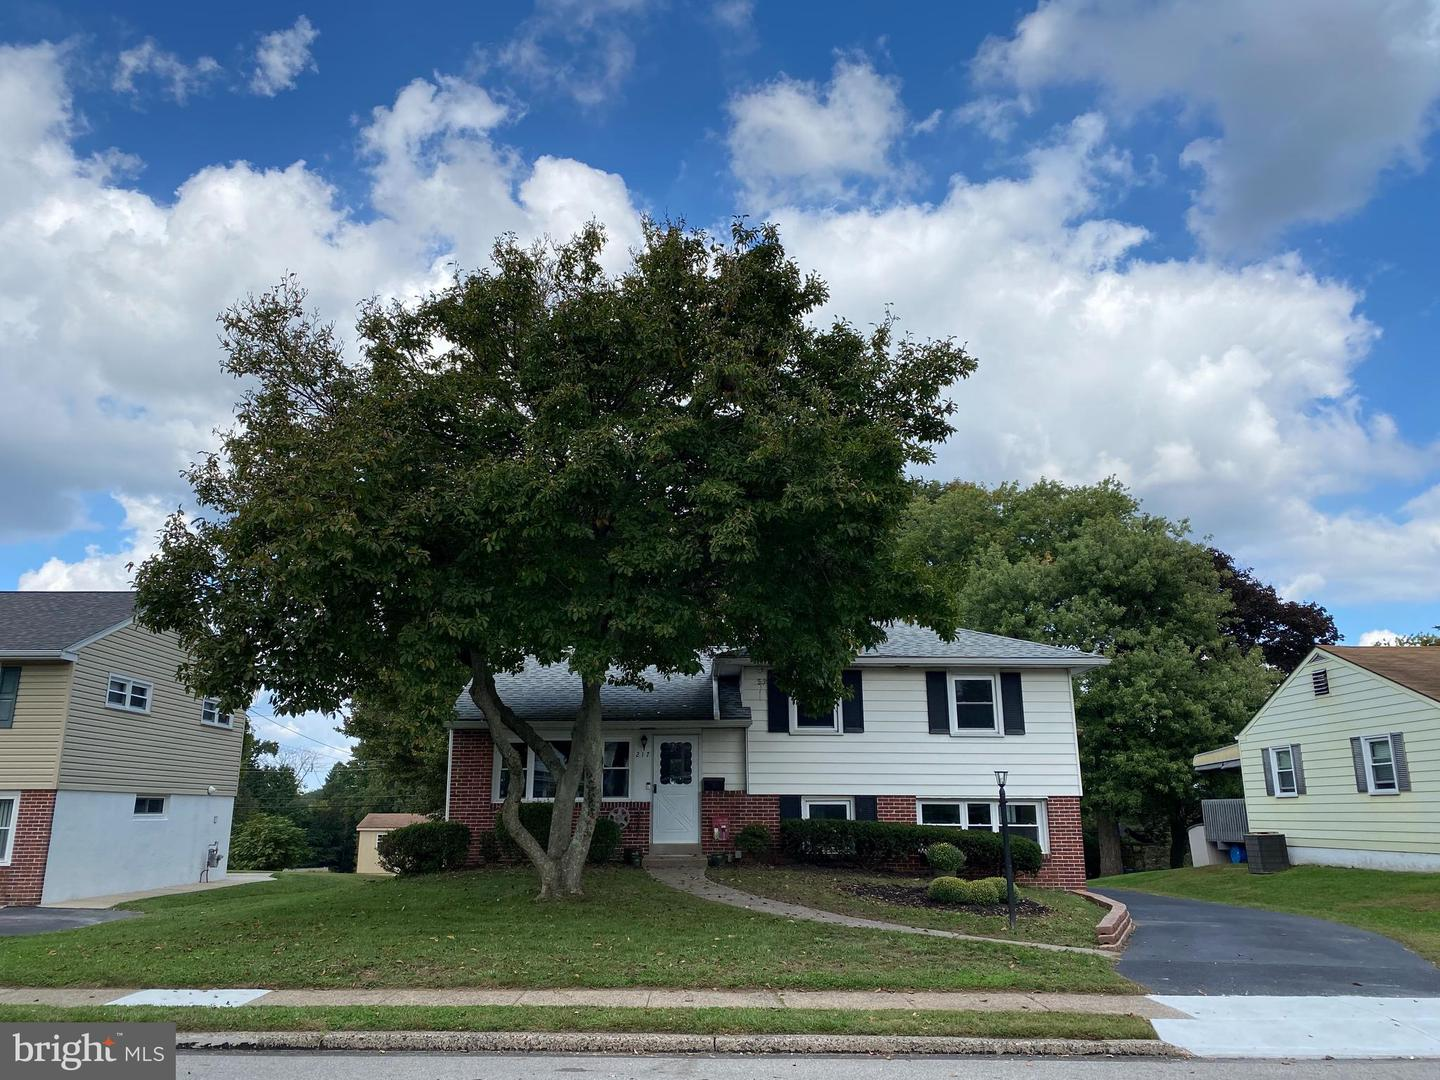 217 Sussex Boulevard Broomall, PA 19008